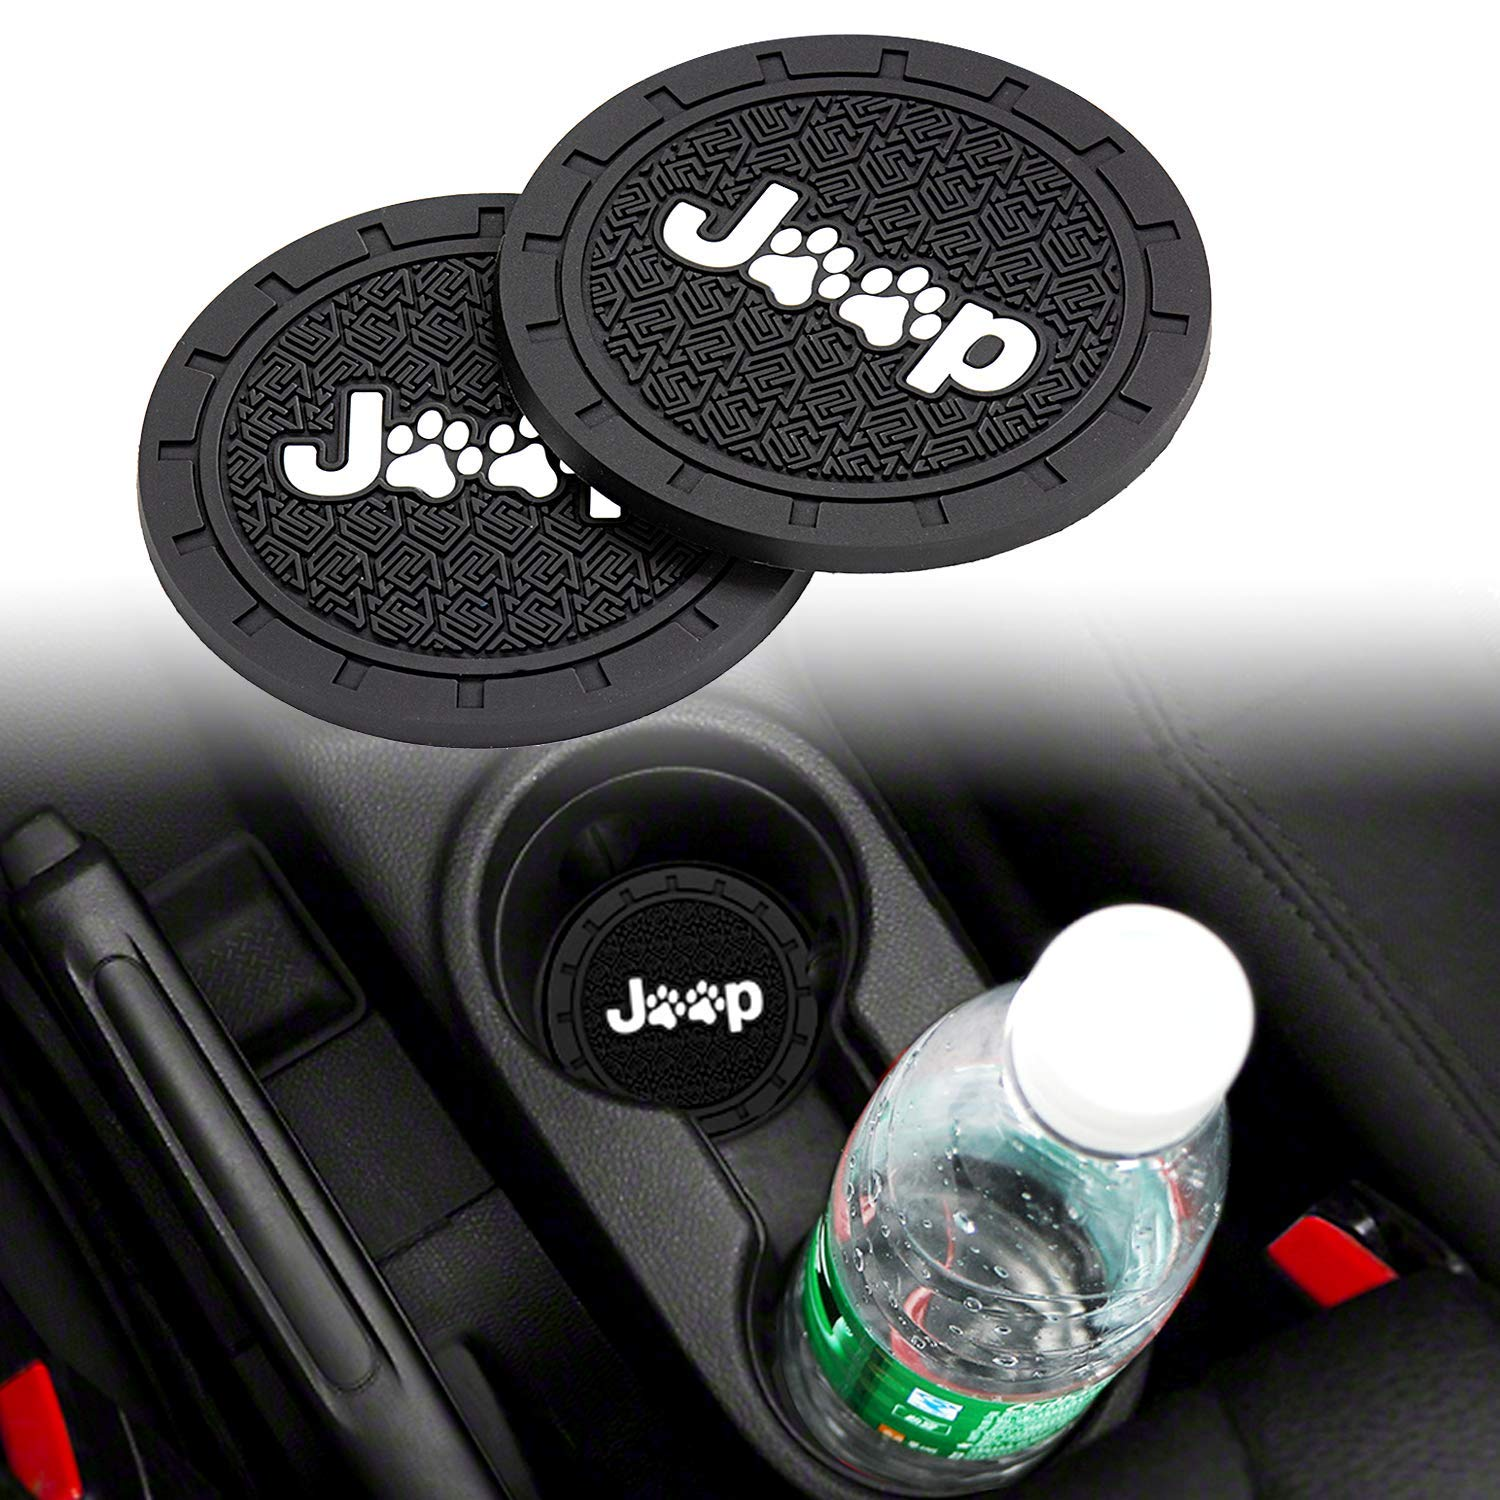 Lipctine 2PCS 2.75 Inch Car Interior Cup Holder Pad Set Round Auto Cup Holder Insert Drink Coaster fit for Vehicle SUV Truck Car